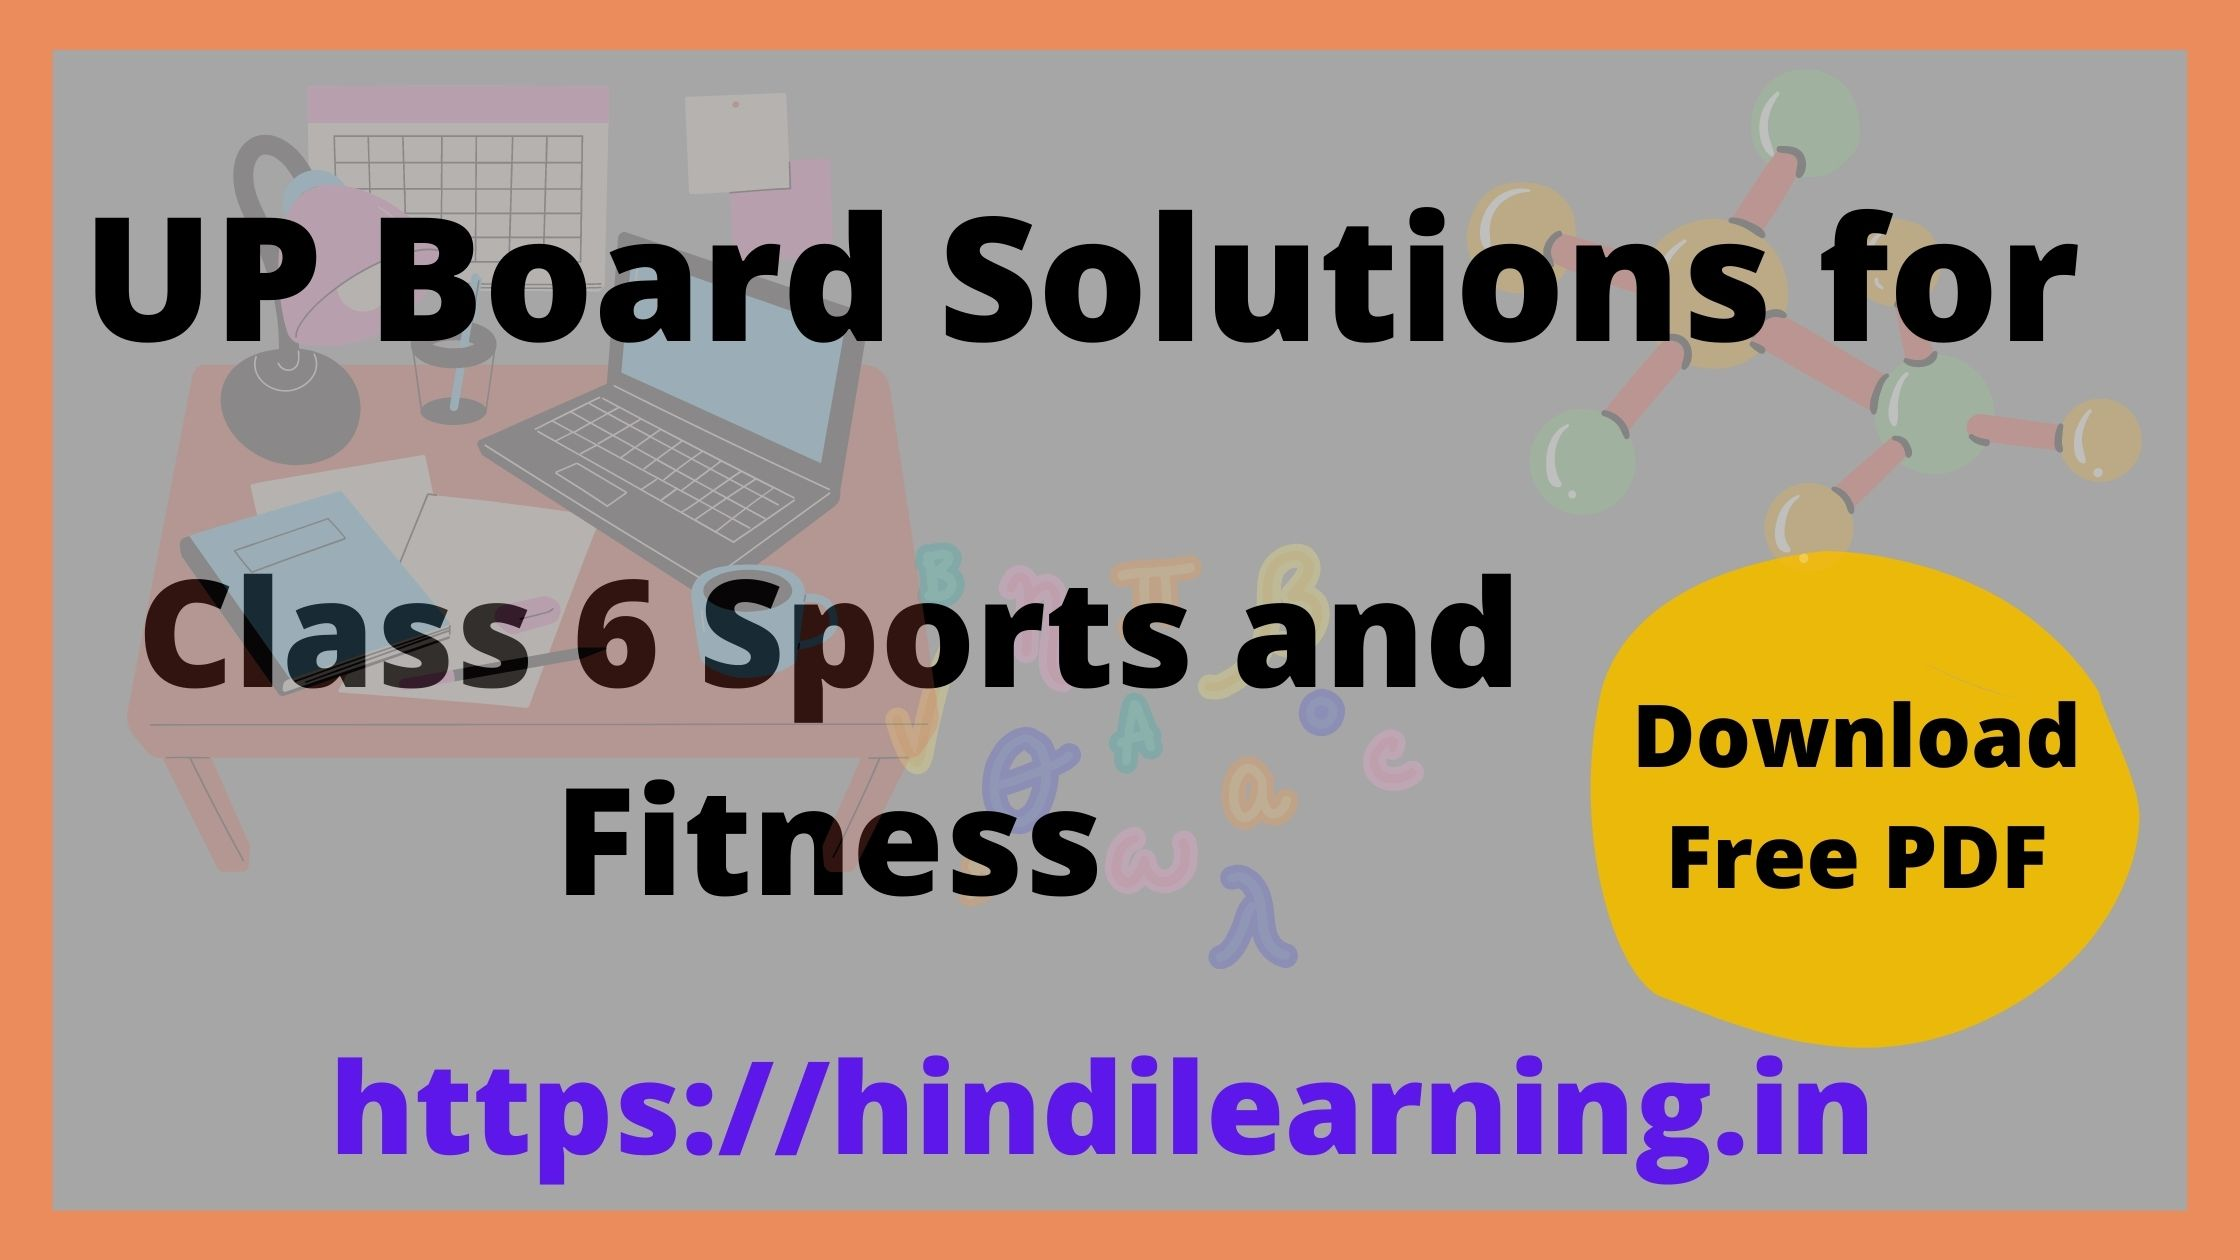 UP Board Solutions for Class 6 Sports and Fitness खेलकूद